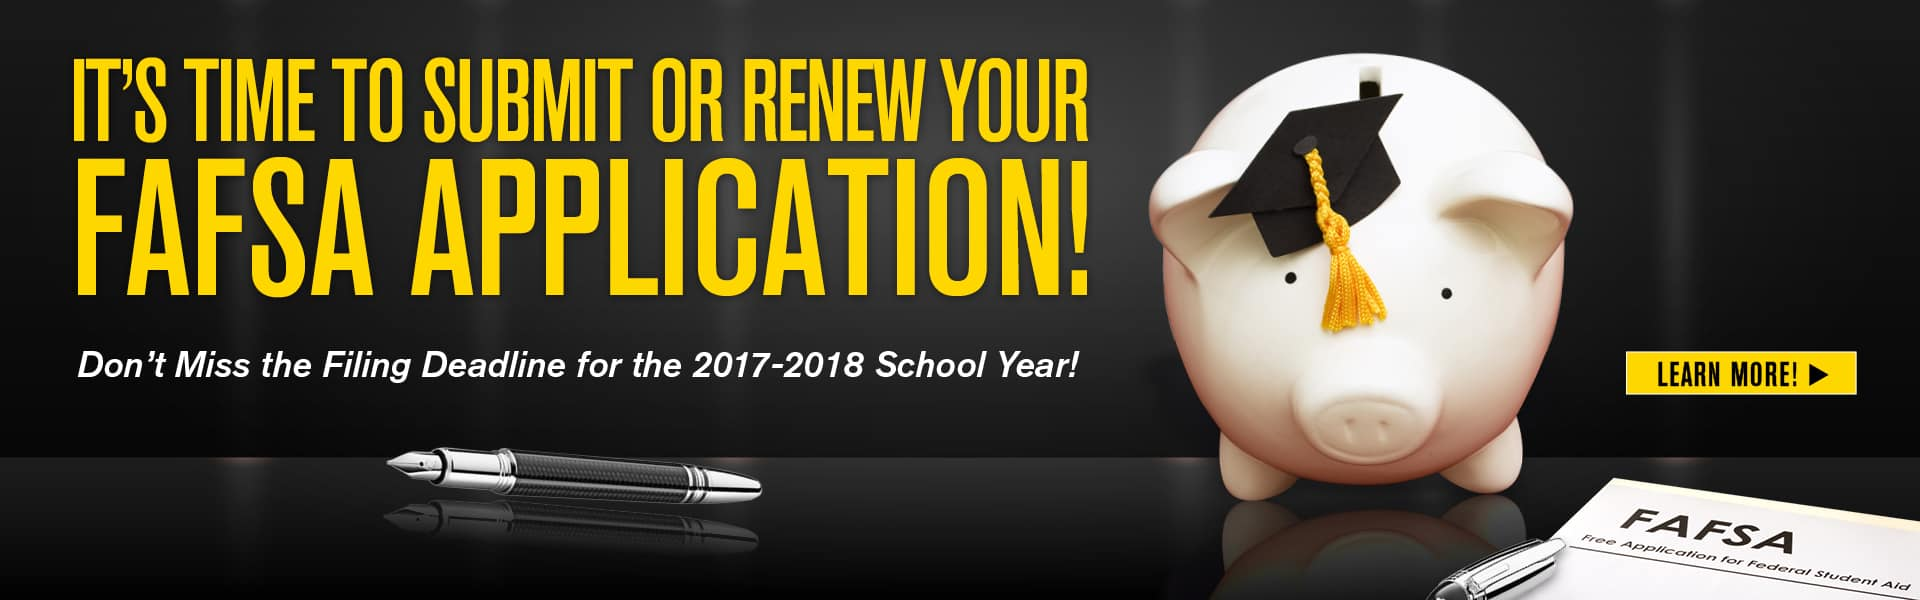 submit or renew your fafsa application